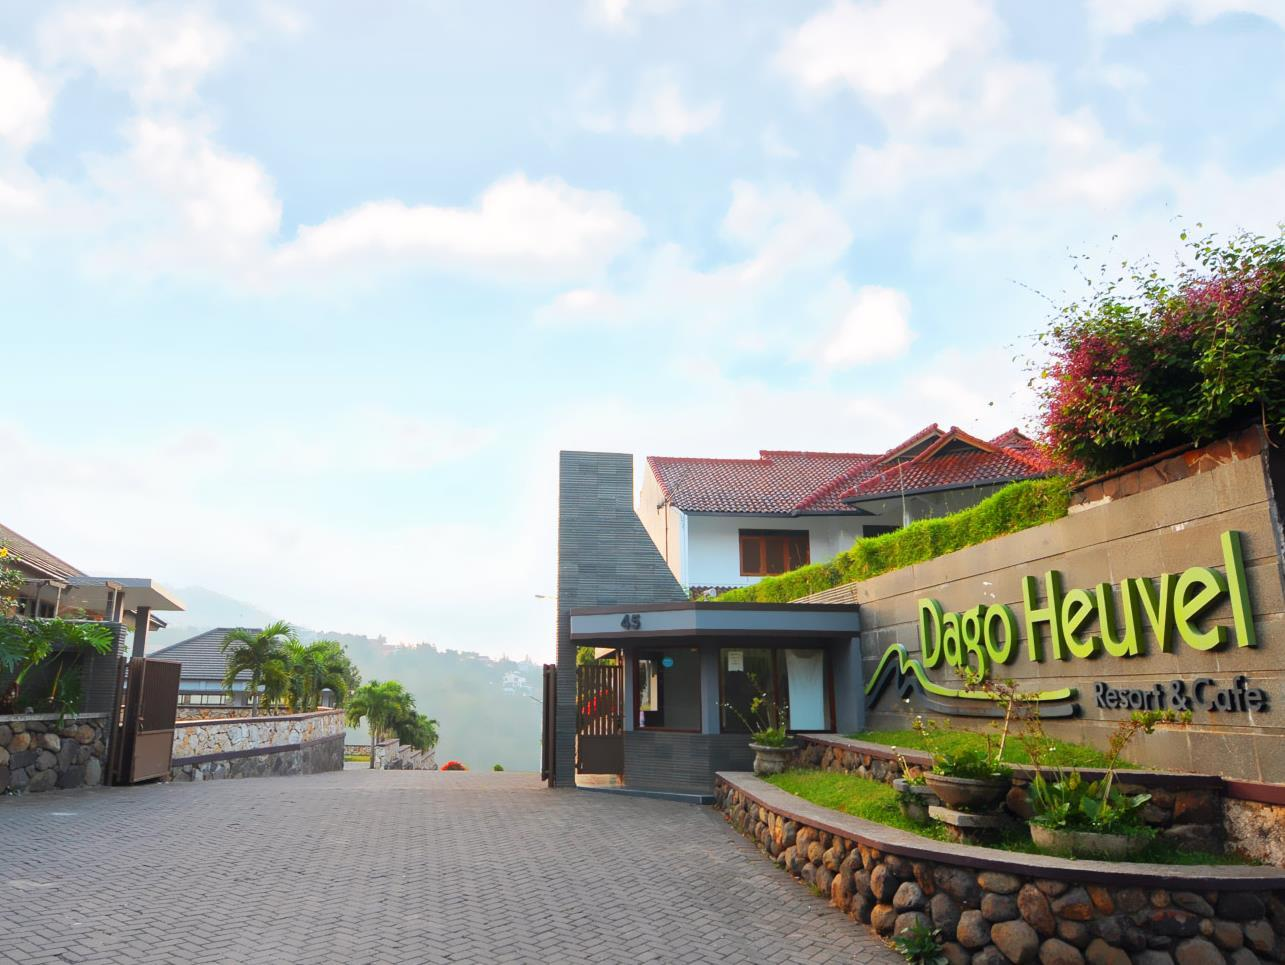 Dago Heuvel Resort - Hotels and Accommodation in Indonesia, Asia